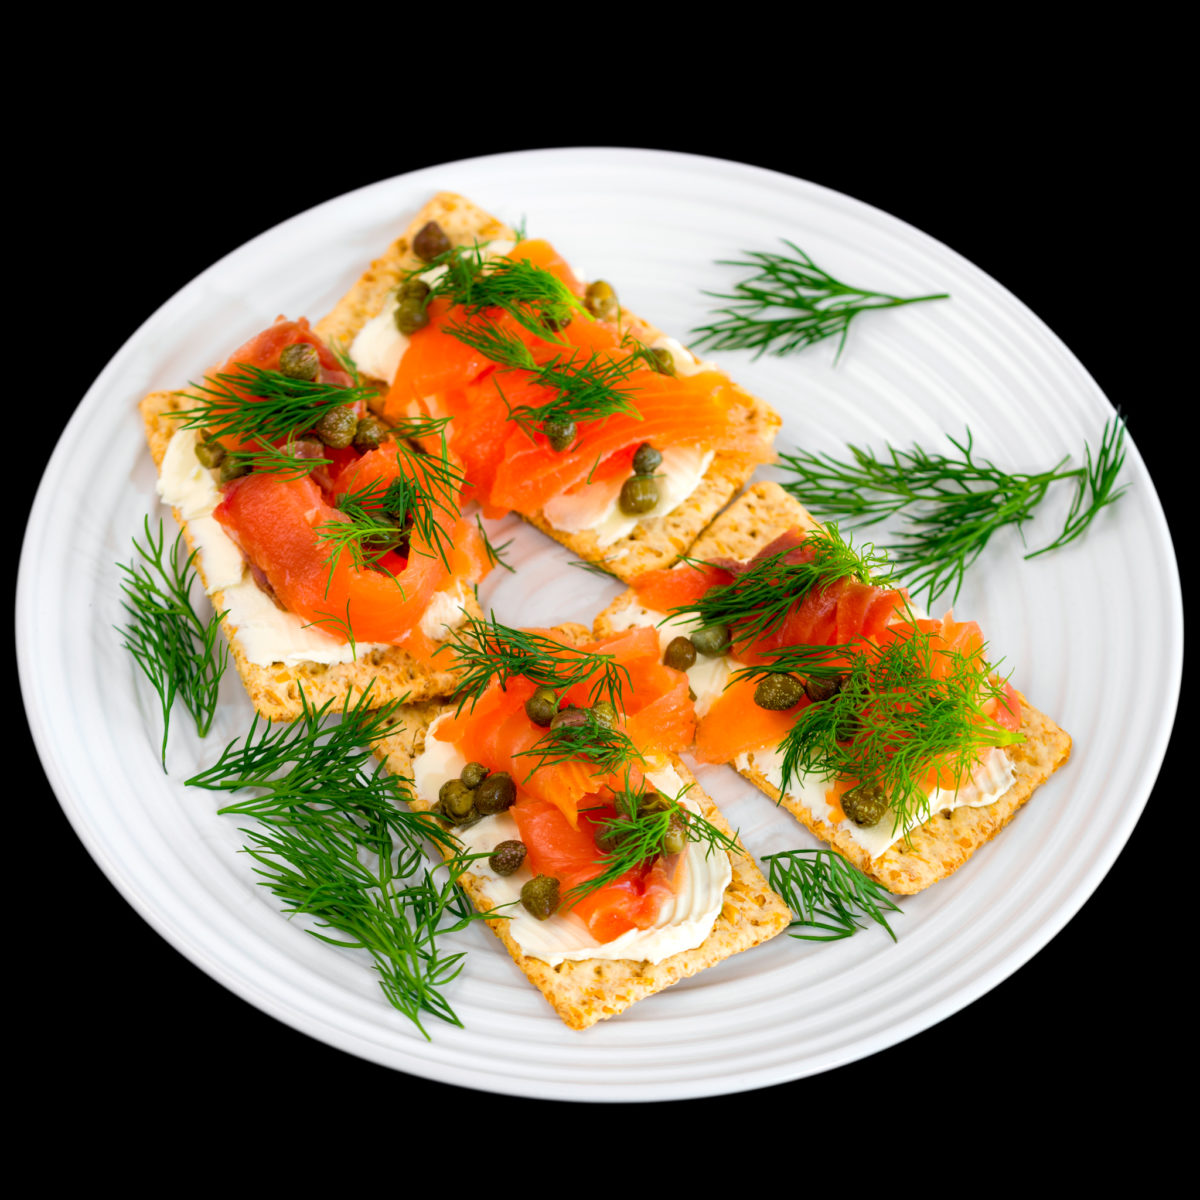 Smoked salmon with cream cheese, capers and dill on Vita-Weat biscuits for lunch